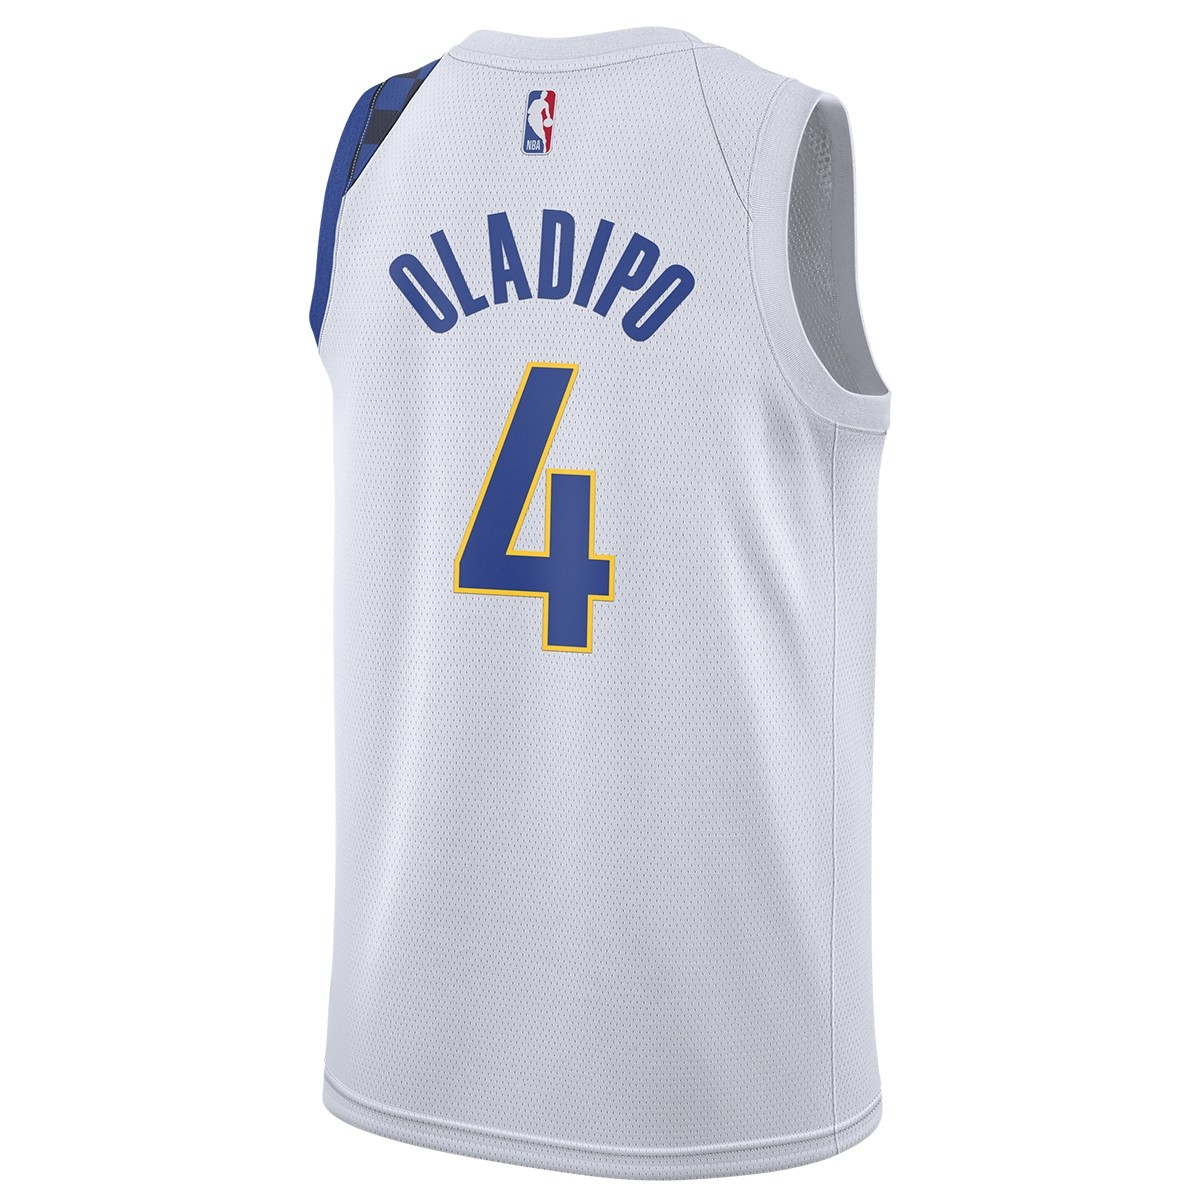 Nike NBA Pacers Swingman Jersey Oladipo 'City Edition'-AV4642-100